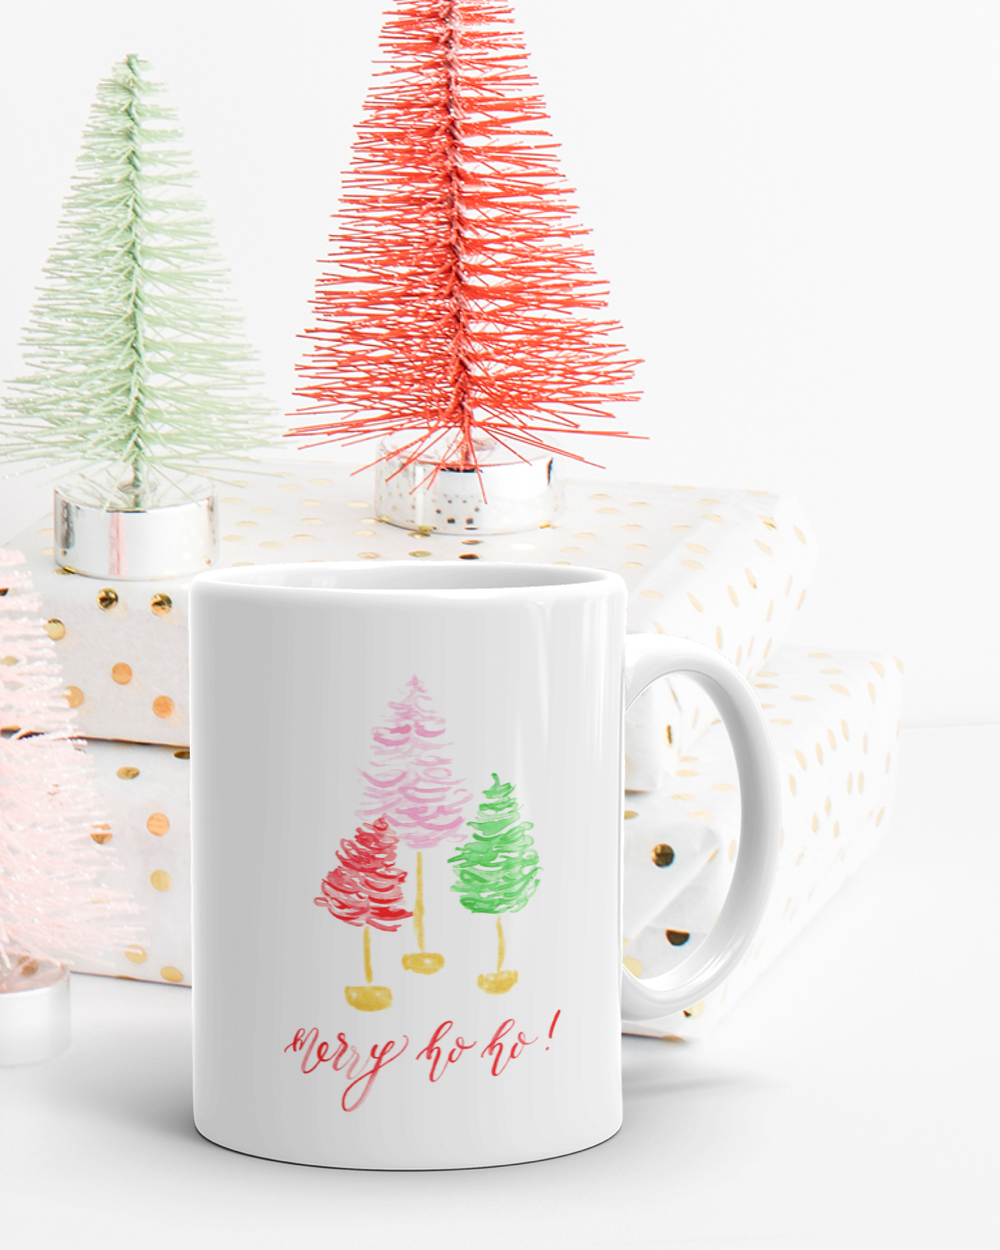 Merry Ho Ho Watercolor Christmas Mug by Simply Jessica Marie